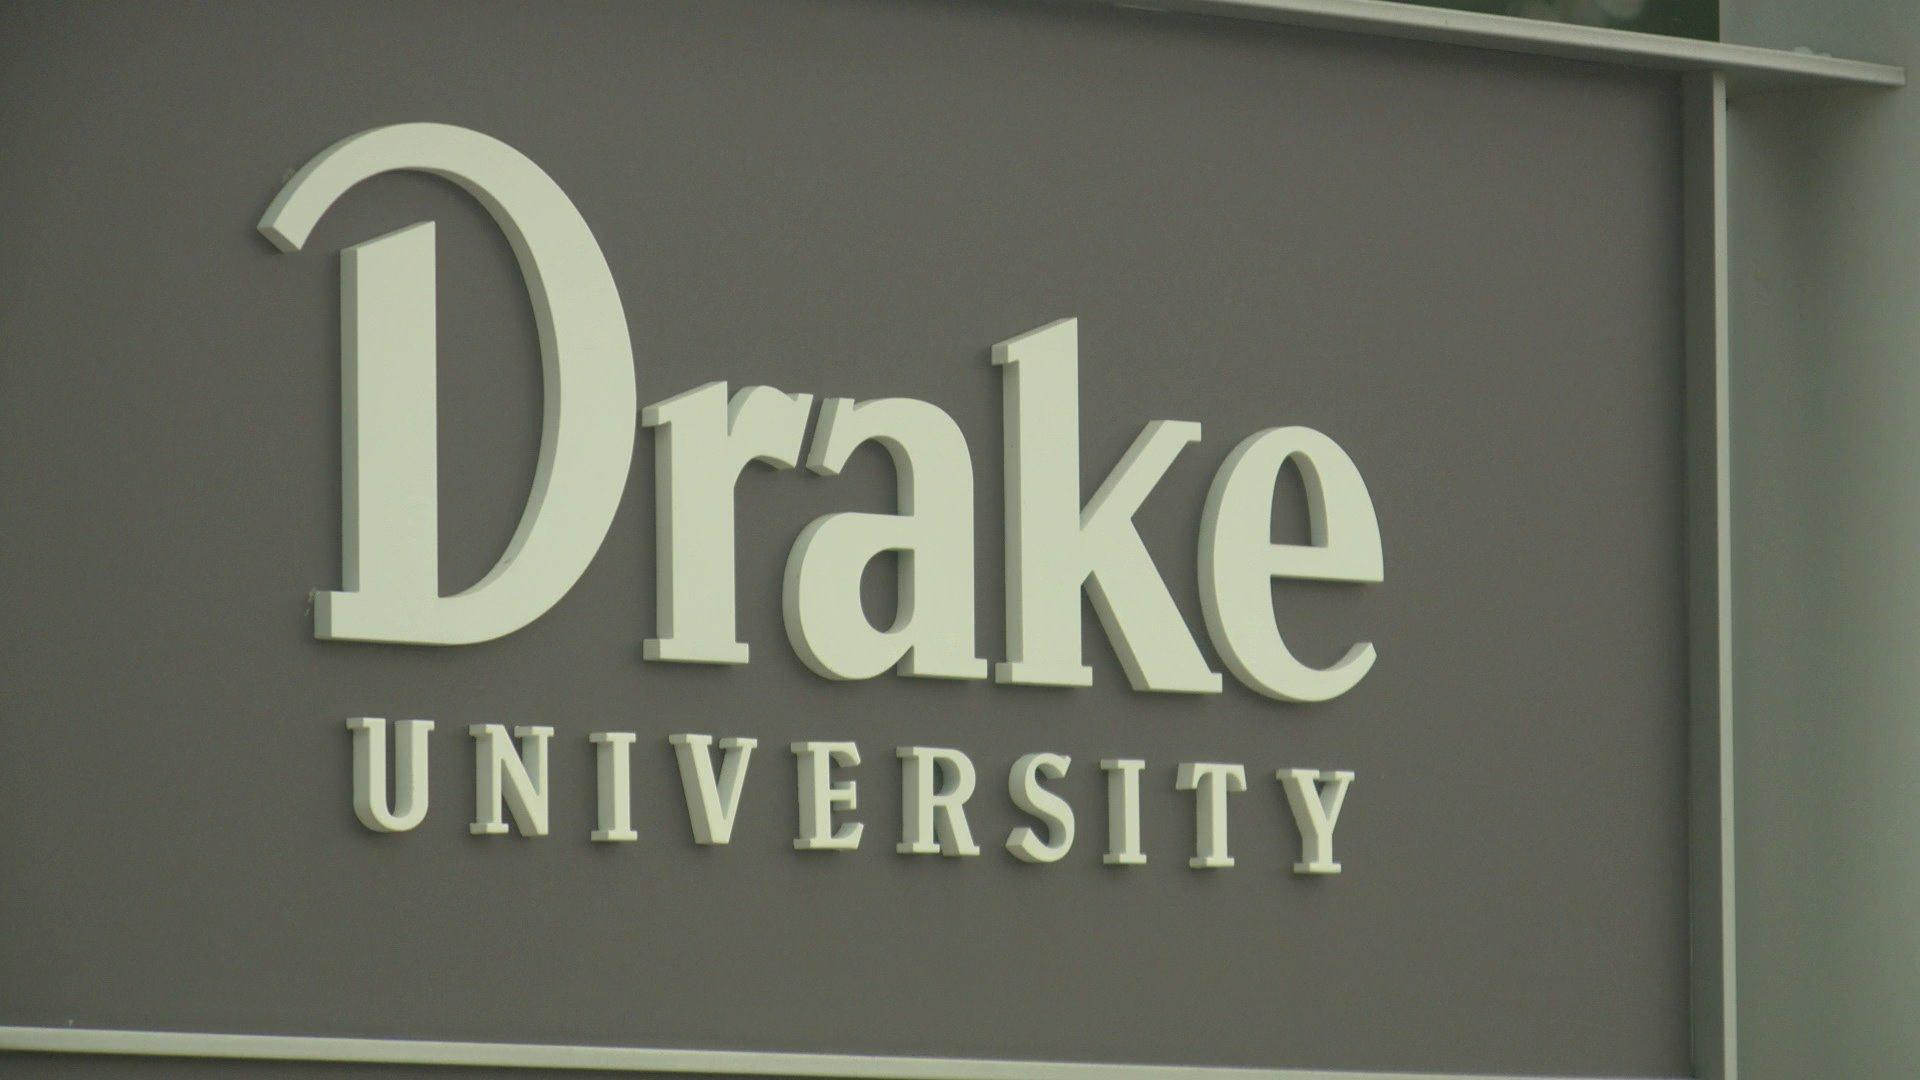 Drake University Students, Staff Shaken After Swastika, Racist Messages Found on Campus